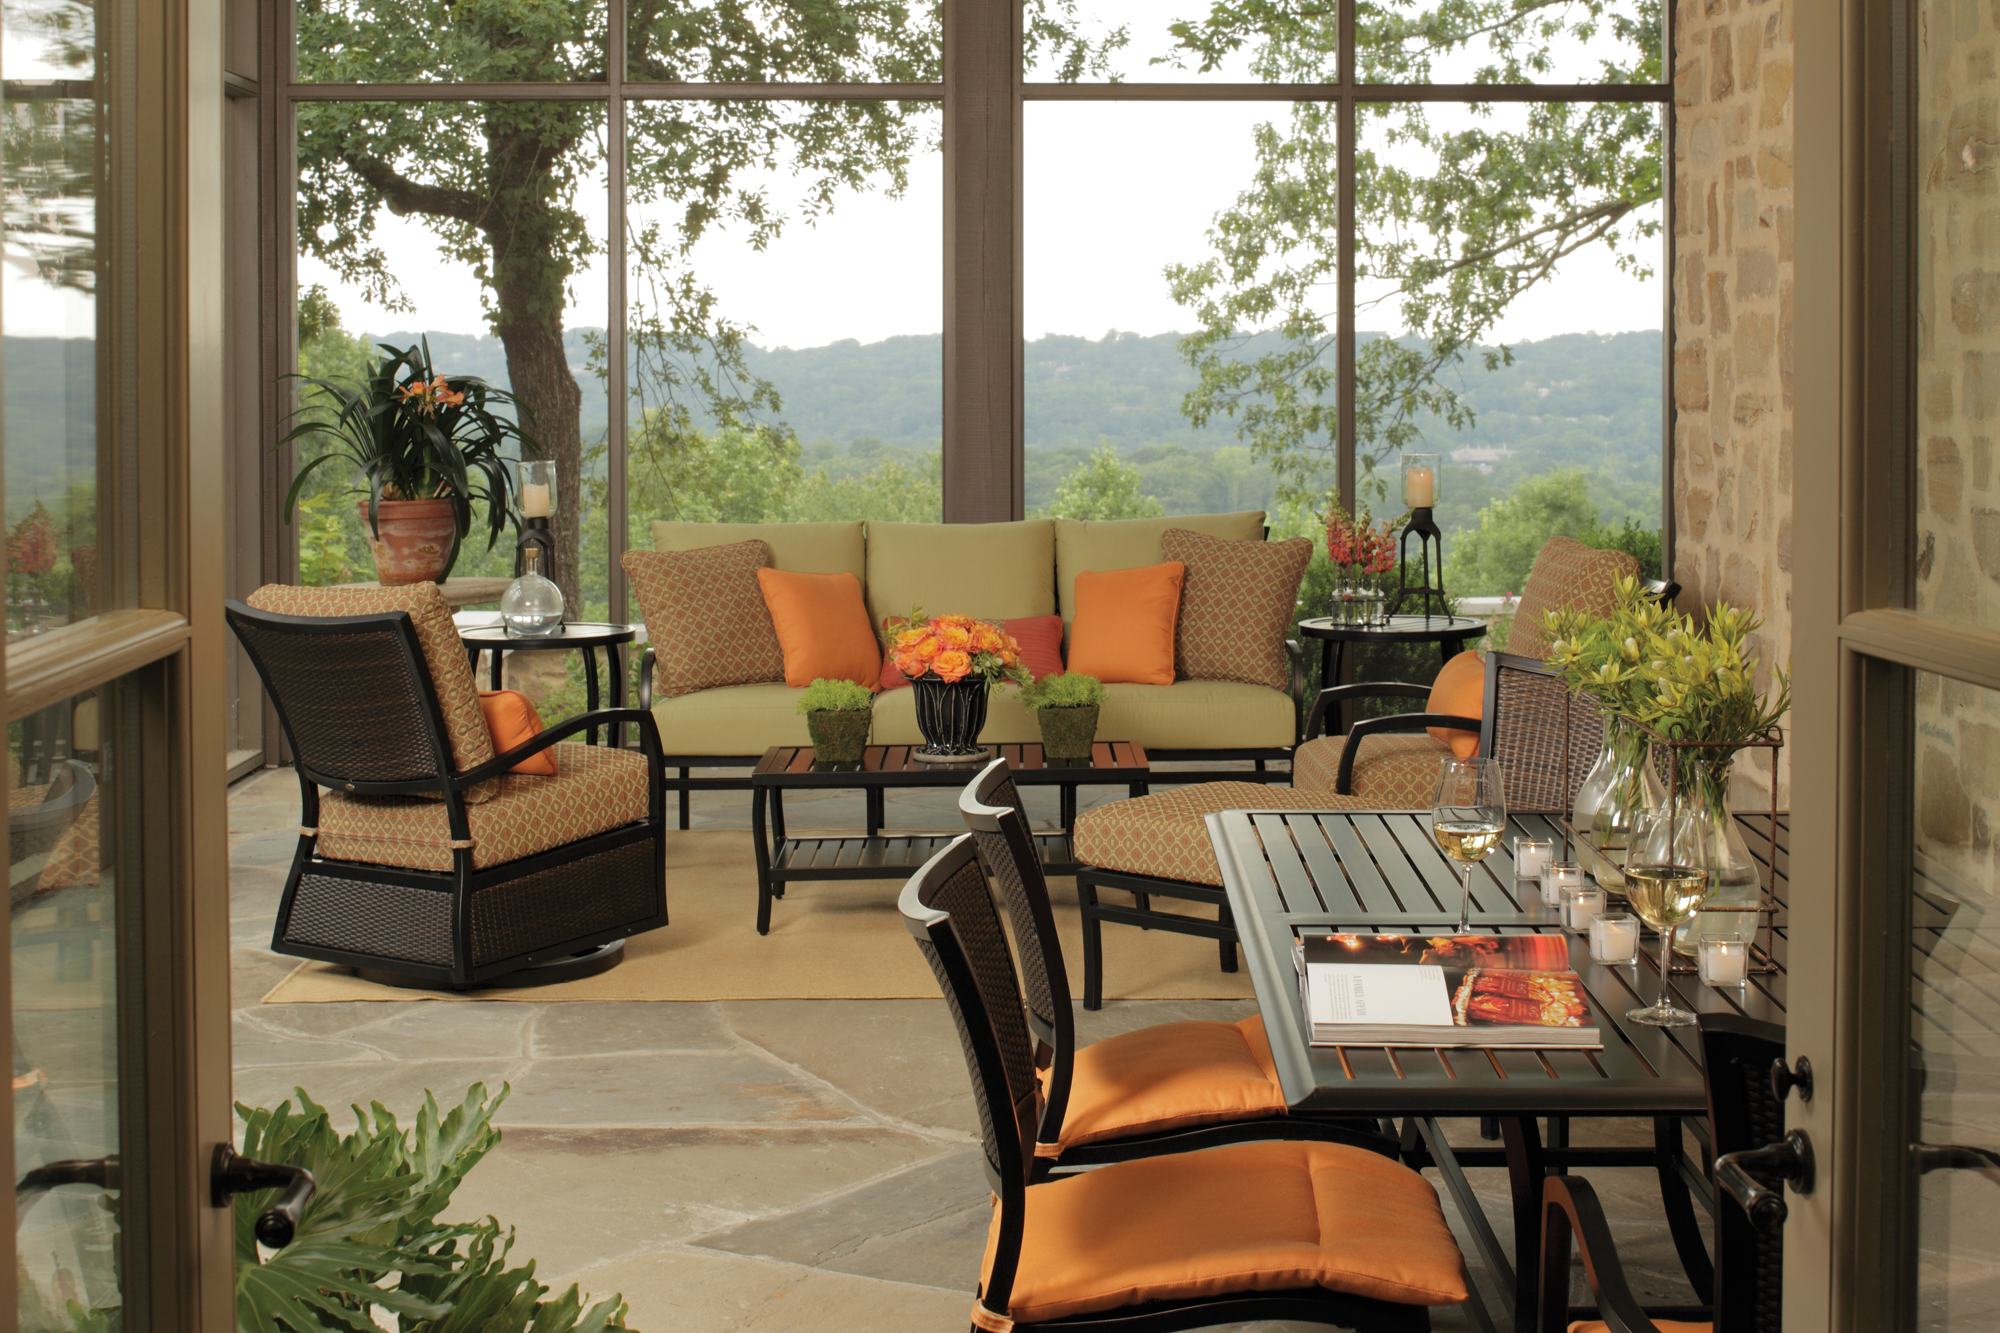 The Essential Elements Of The Perfect Patio Summer Classics - Summer classics outdoor furniture